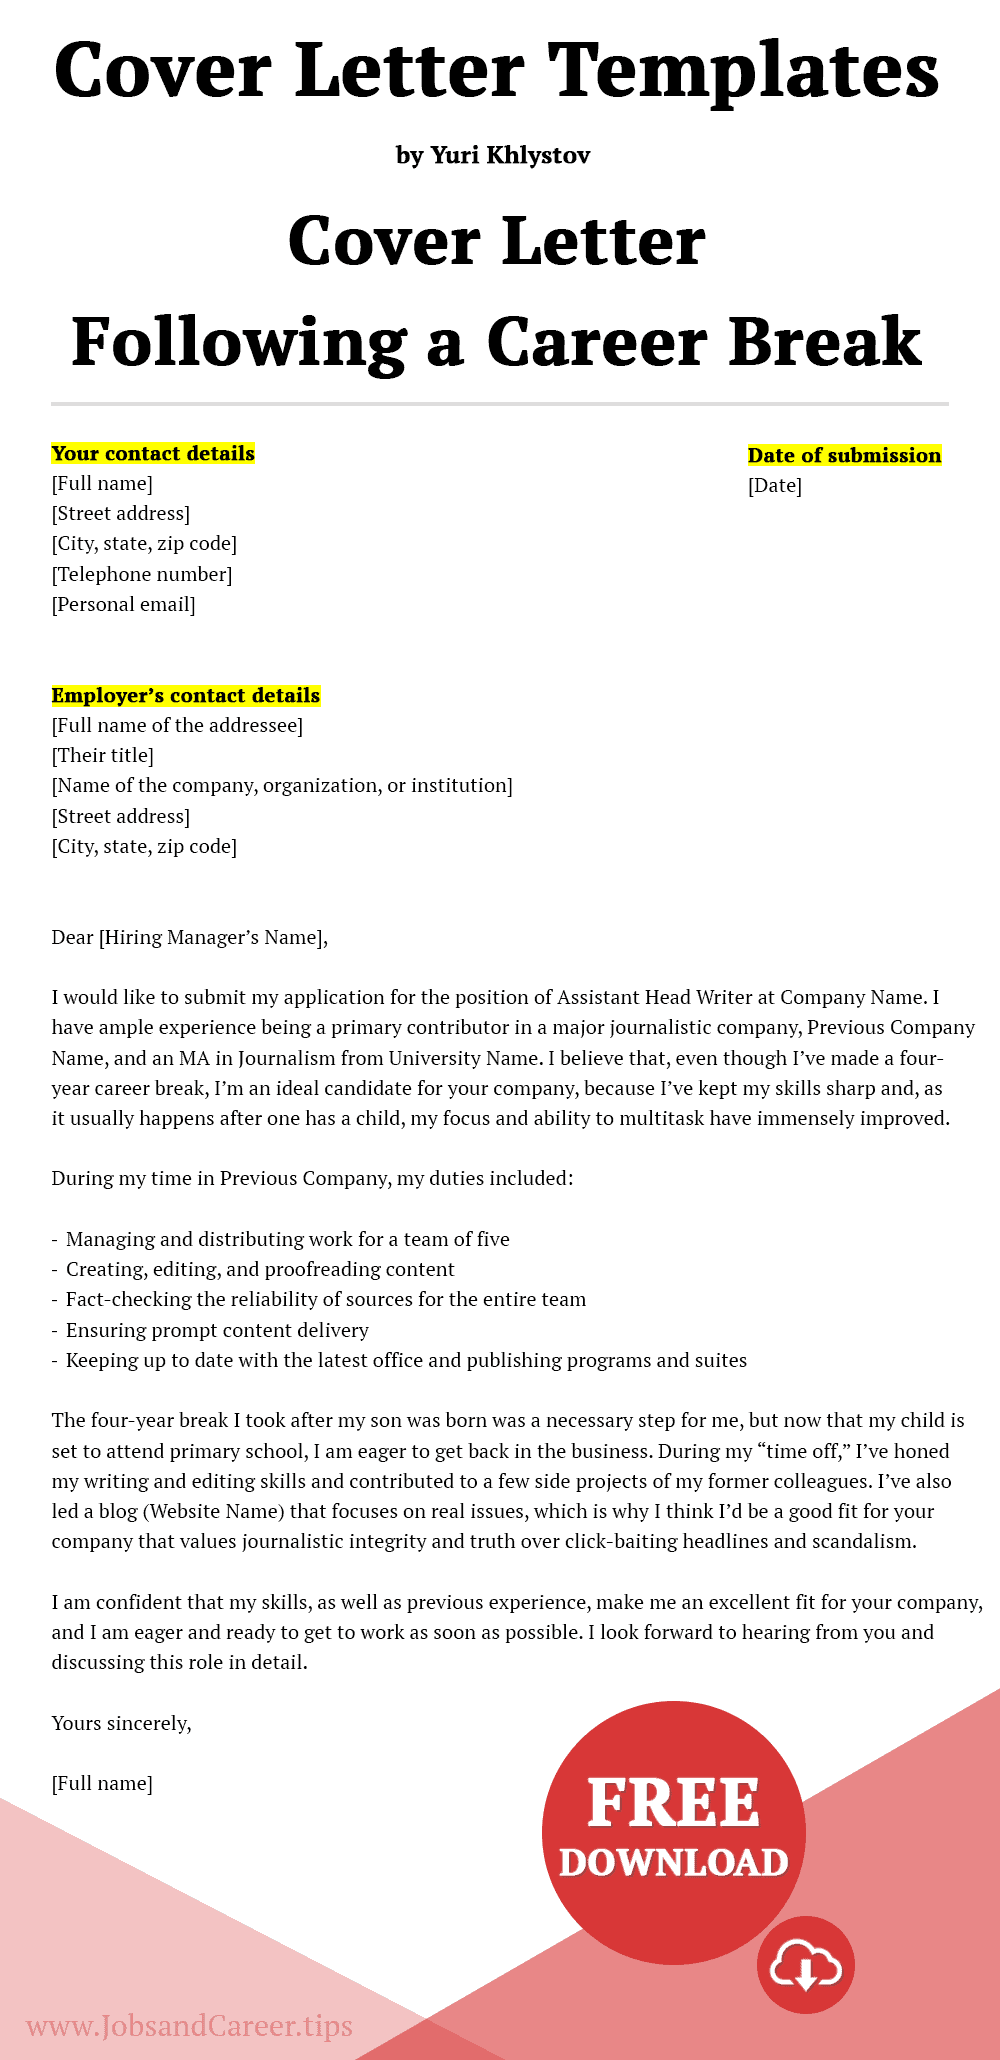 Click to download the cover letter following a career break